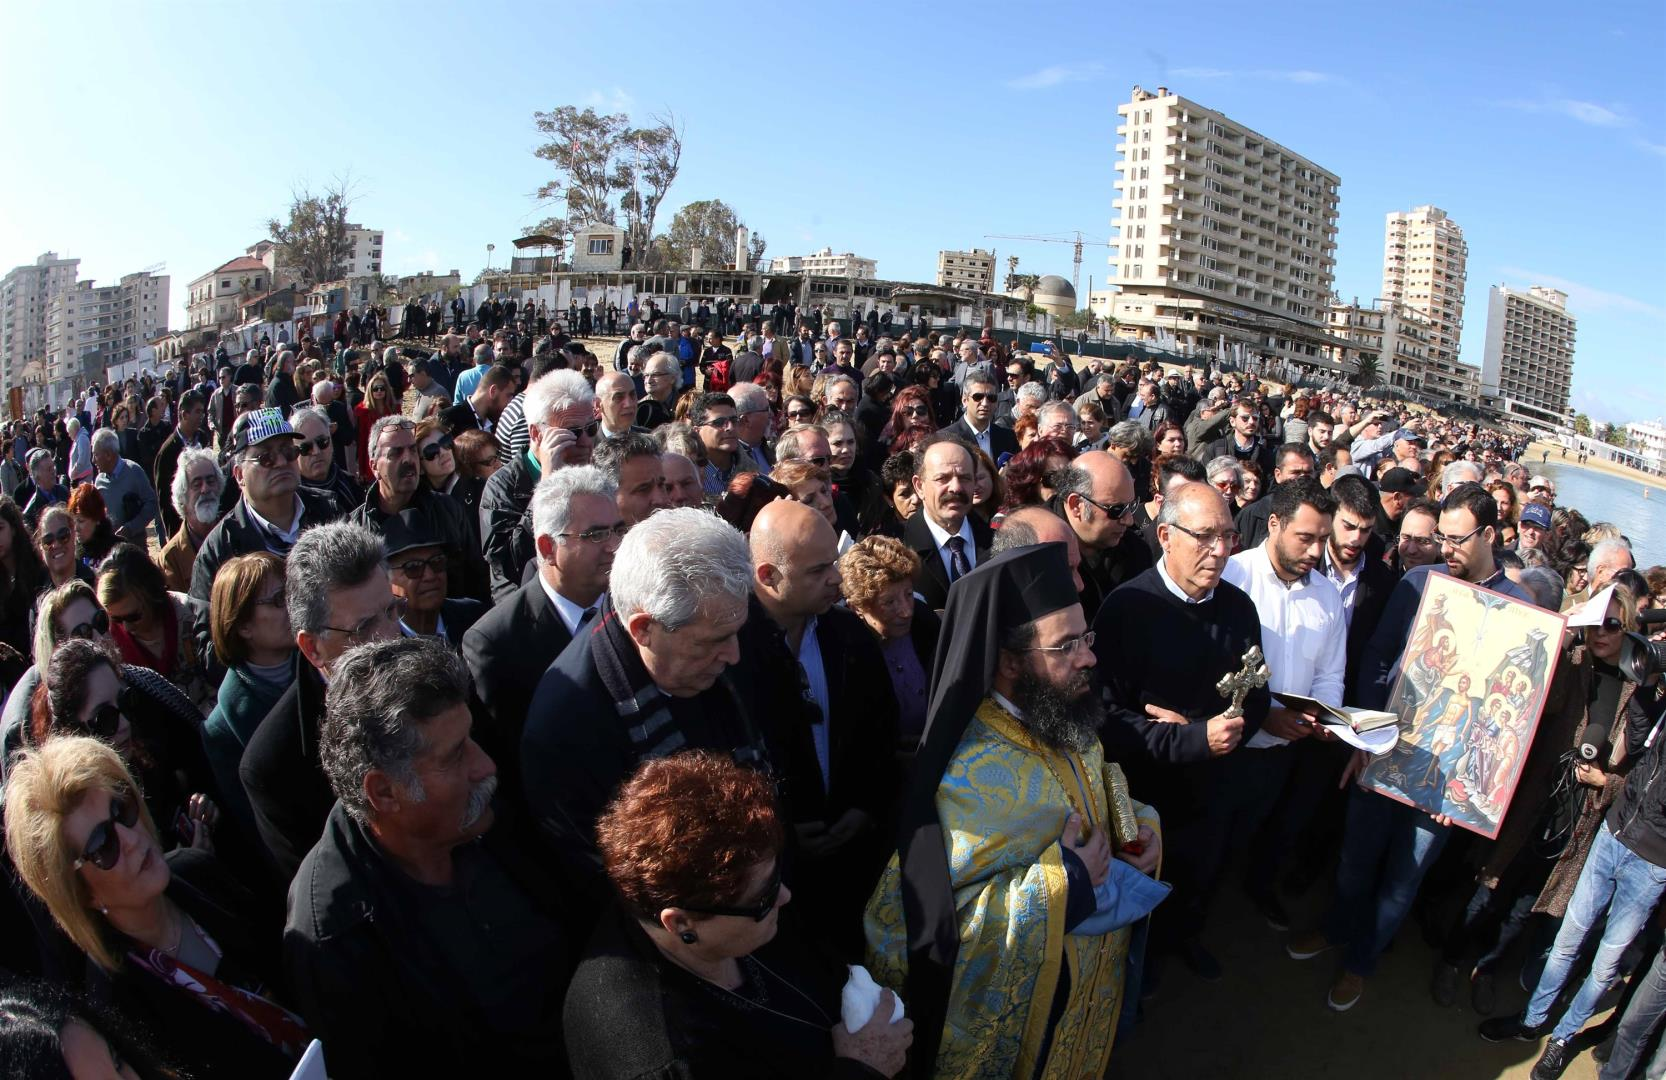 Pilgrims from all over Cyprus attend Epiphany liturgy in occupied Famagusta after 42 years